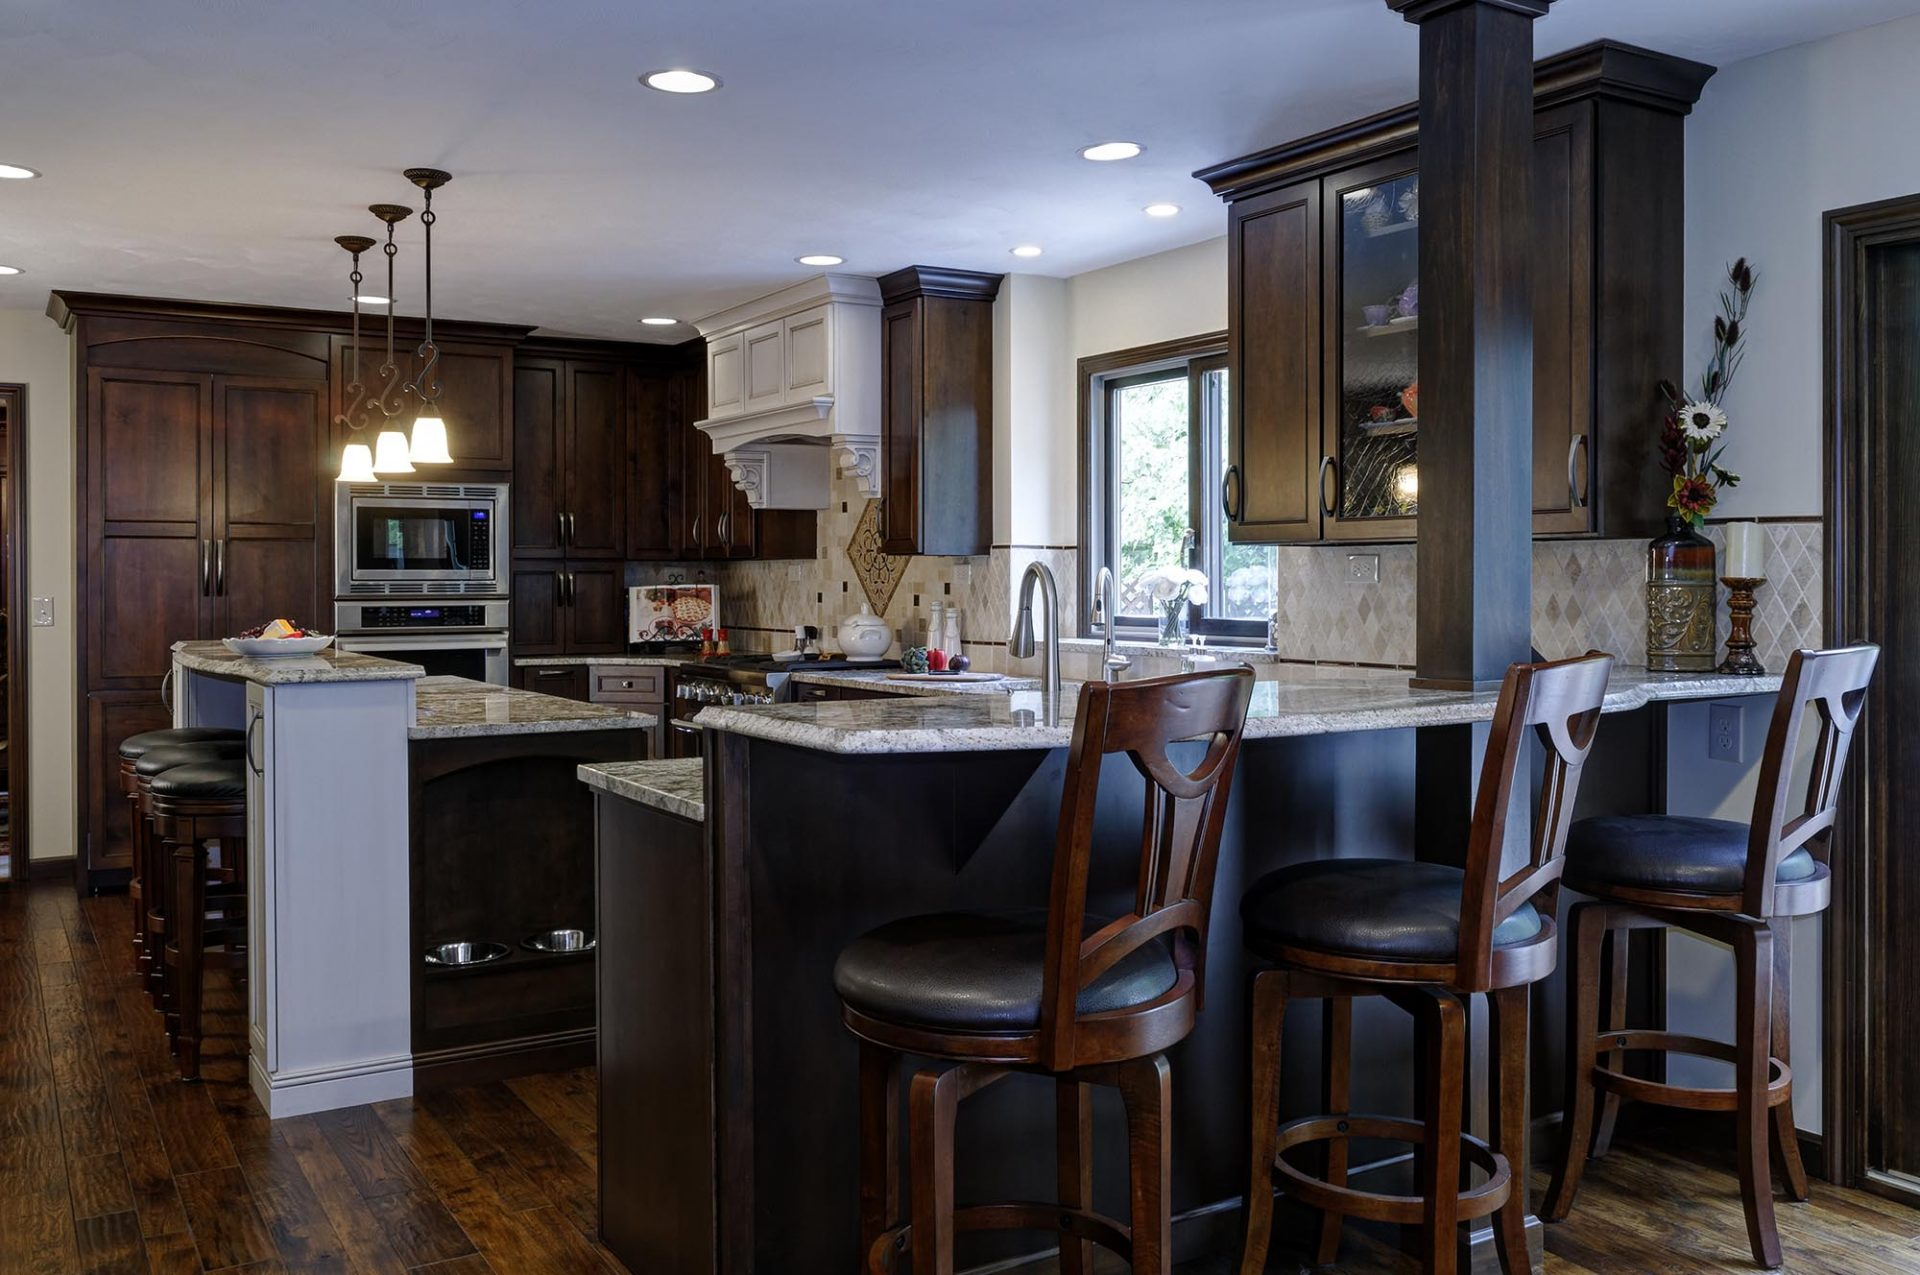 Kitchen, Columbus, Old Towne East, Dave Fox, Remodel, brick, marble tile, white cabinets, small kitchen, floating shelves